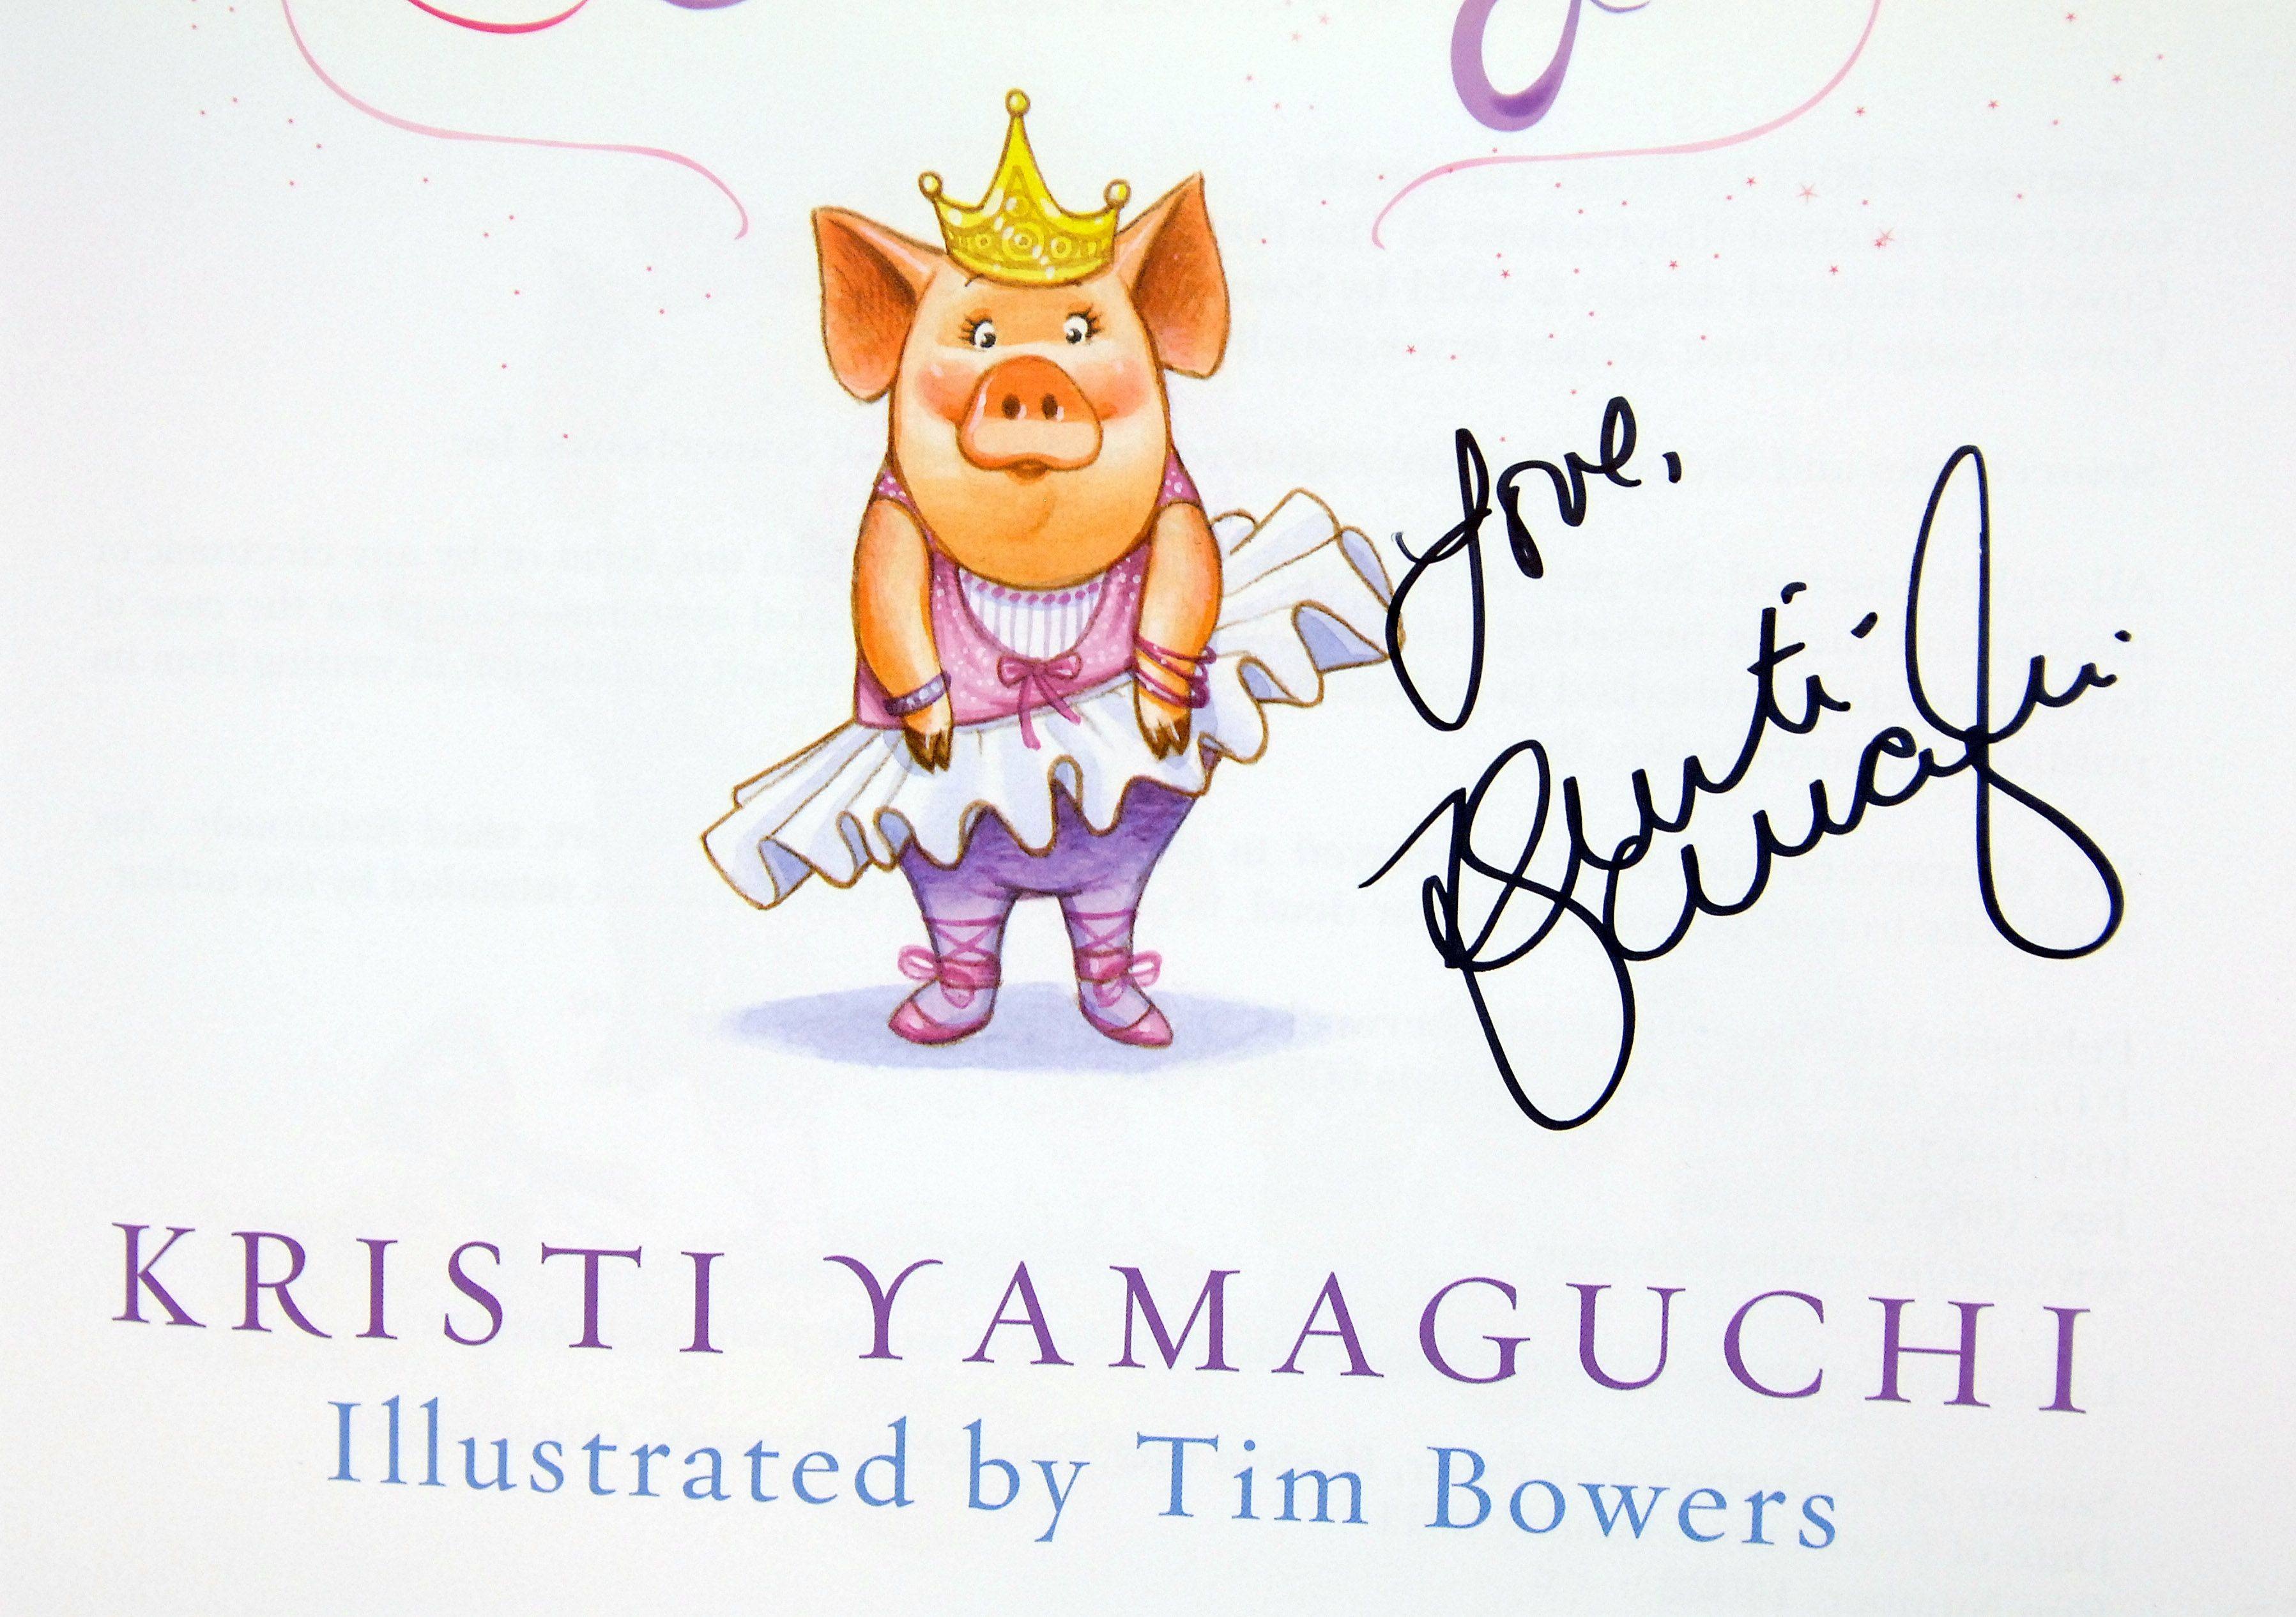 Some students who bought Kristi Yamaguchi's book found her autograph inside.